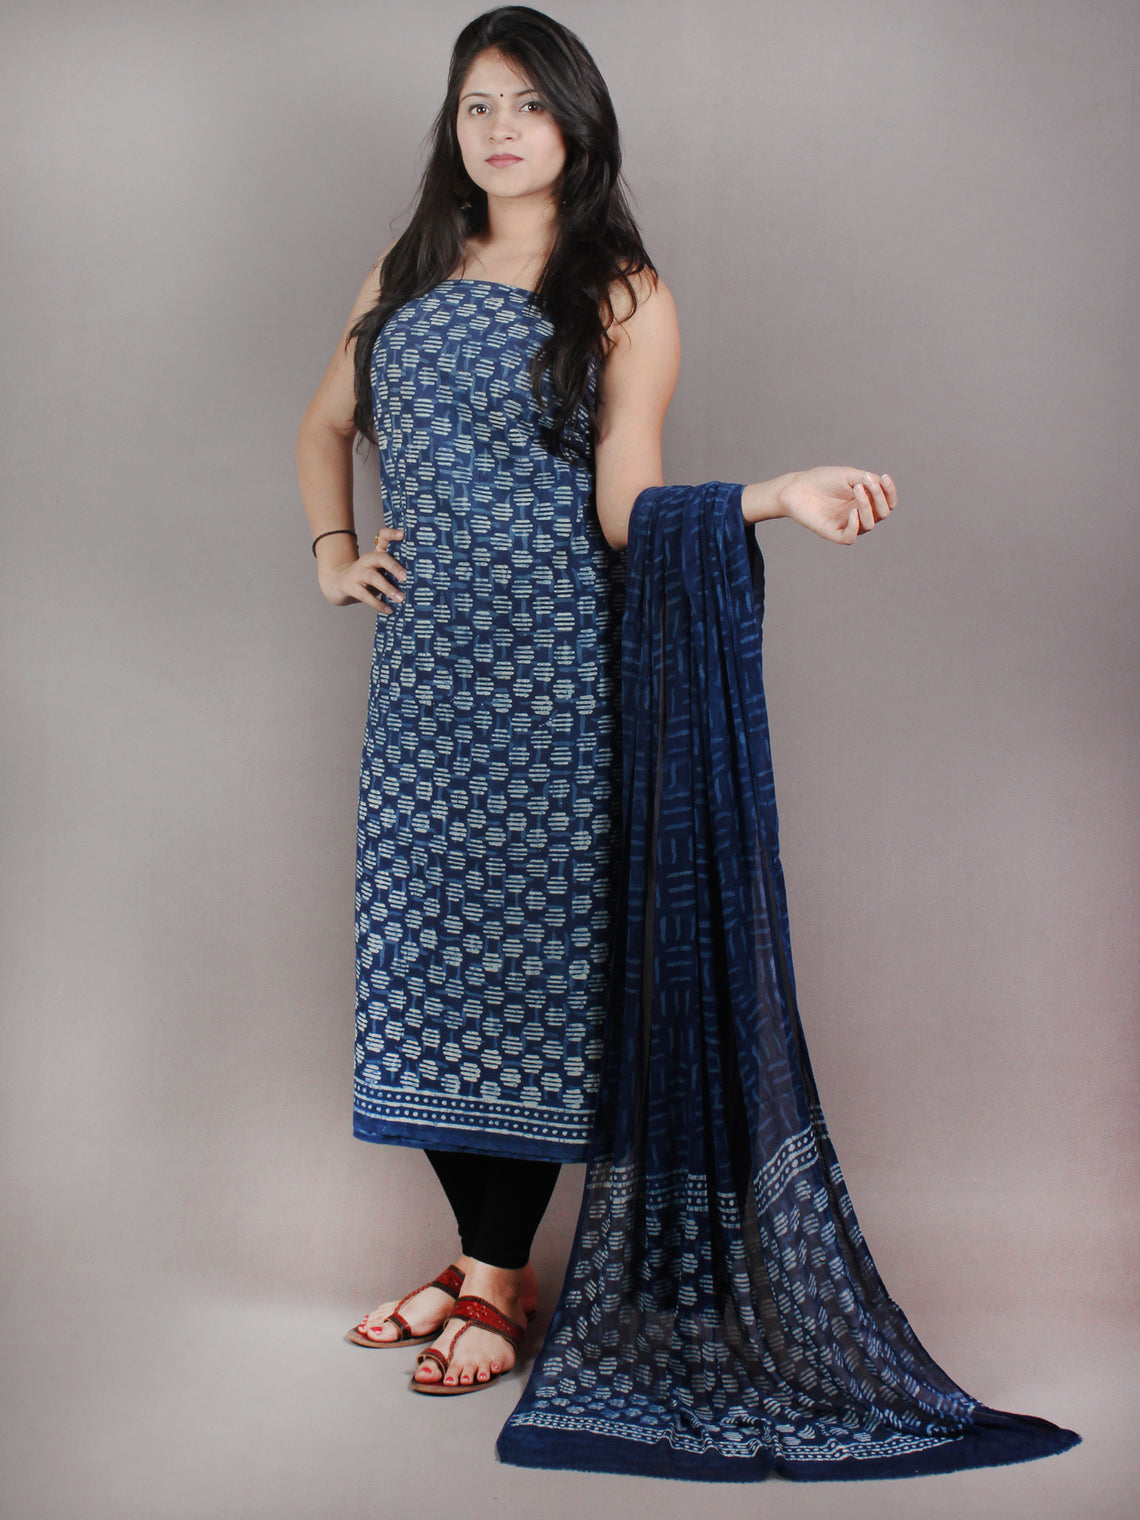 Indigo White Hand Block Printed Cotton Suit-Salwar Fabric With Chiffon Dupatta - S1628058